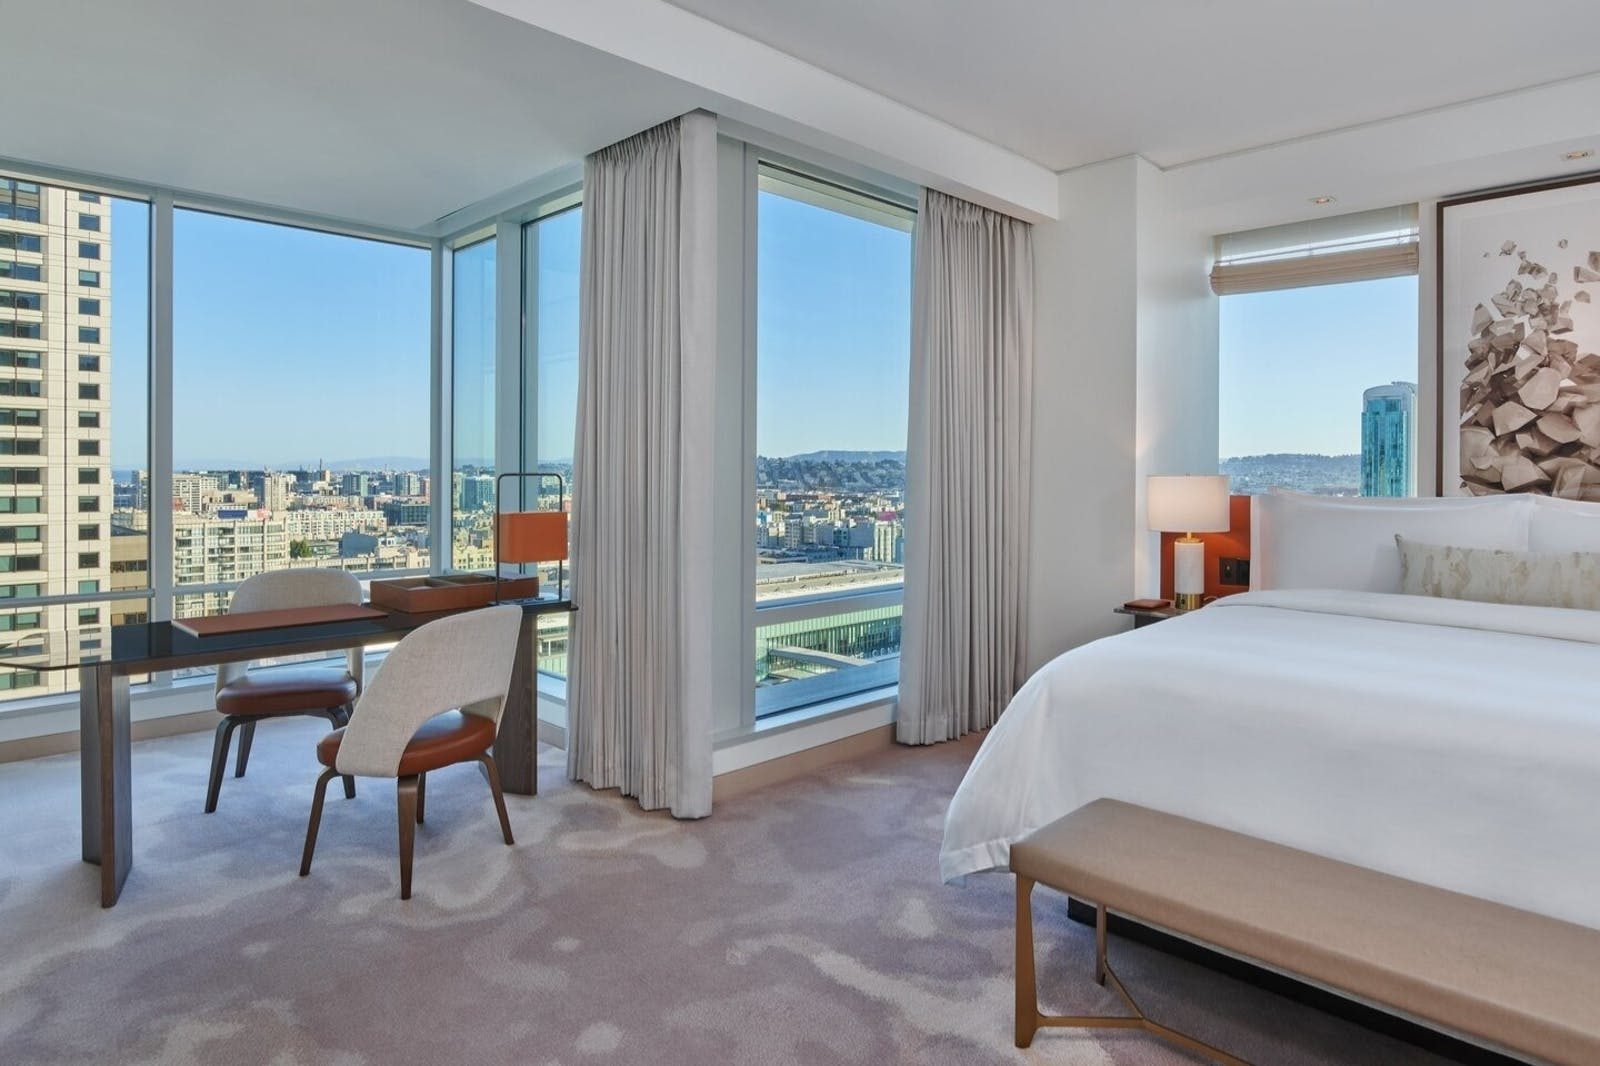 king executive premiere guest room at st regis san francisco